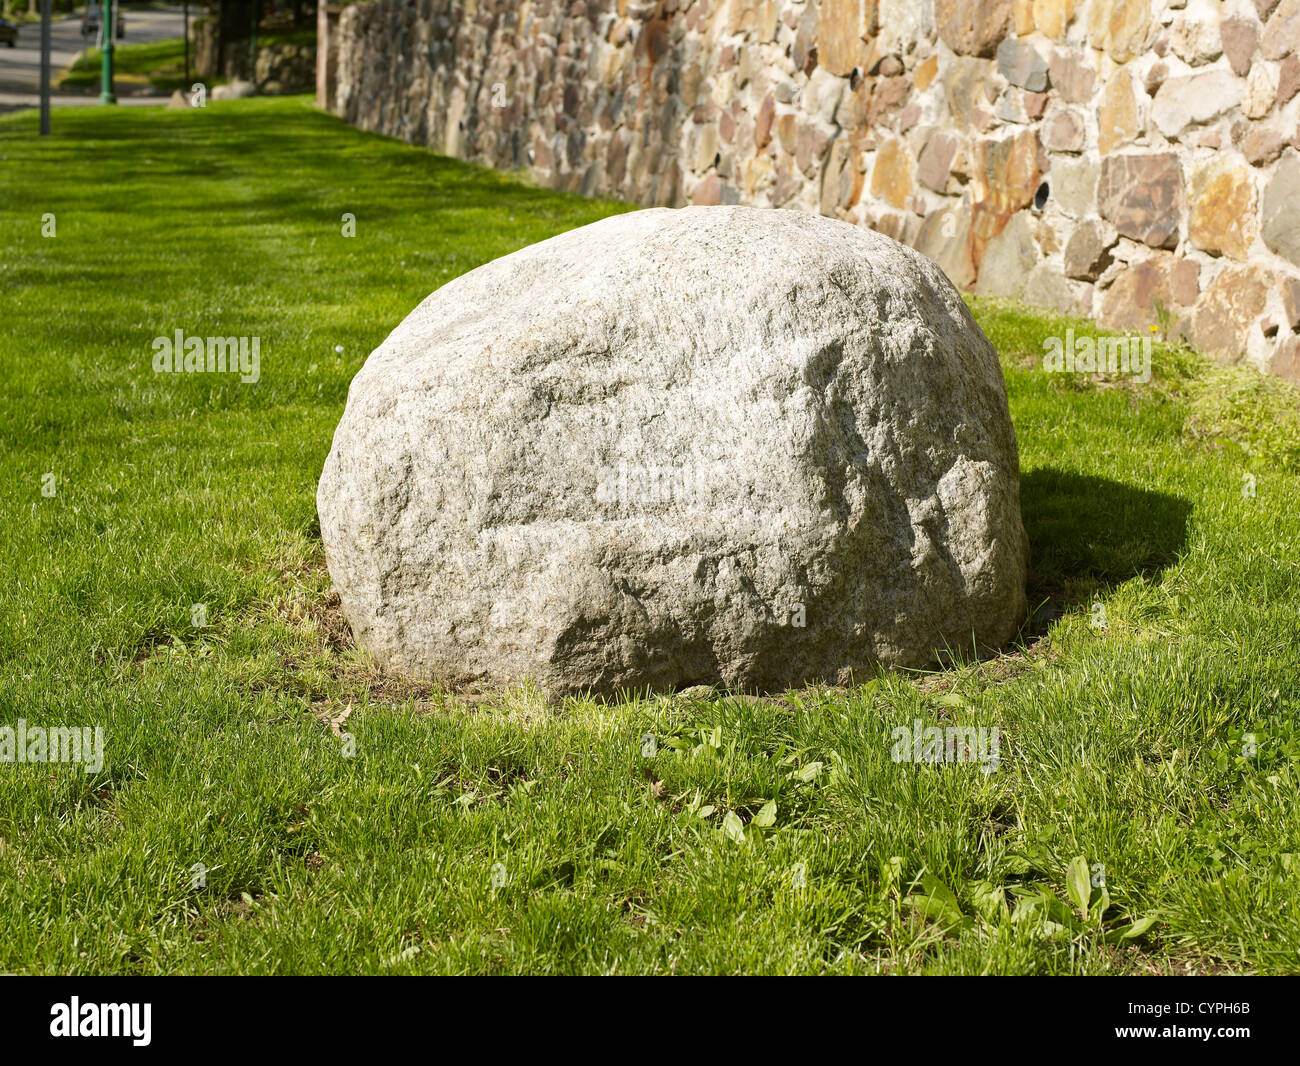 Big rock and grass - Stock Image